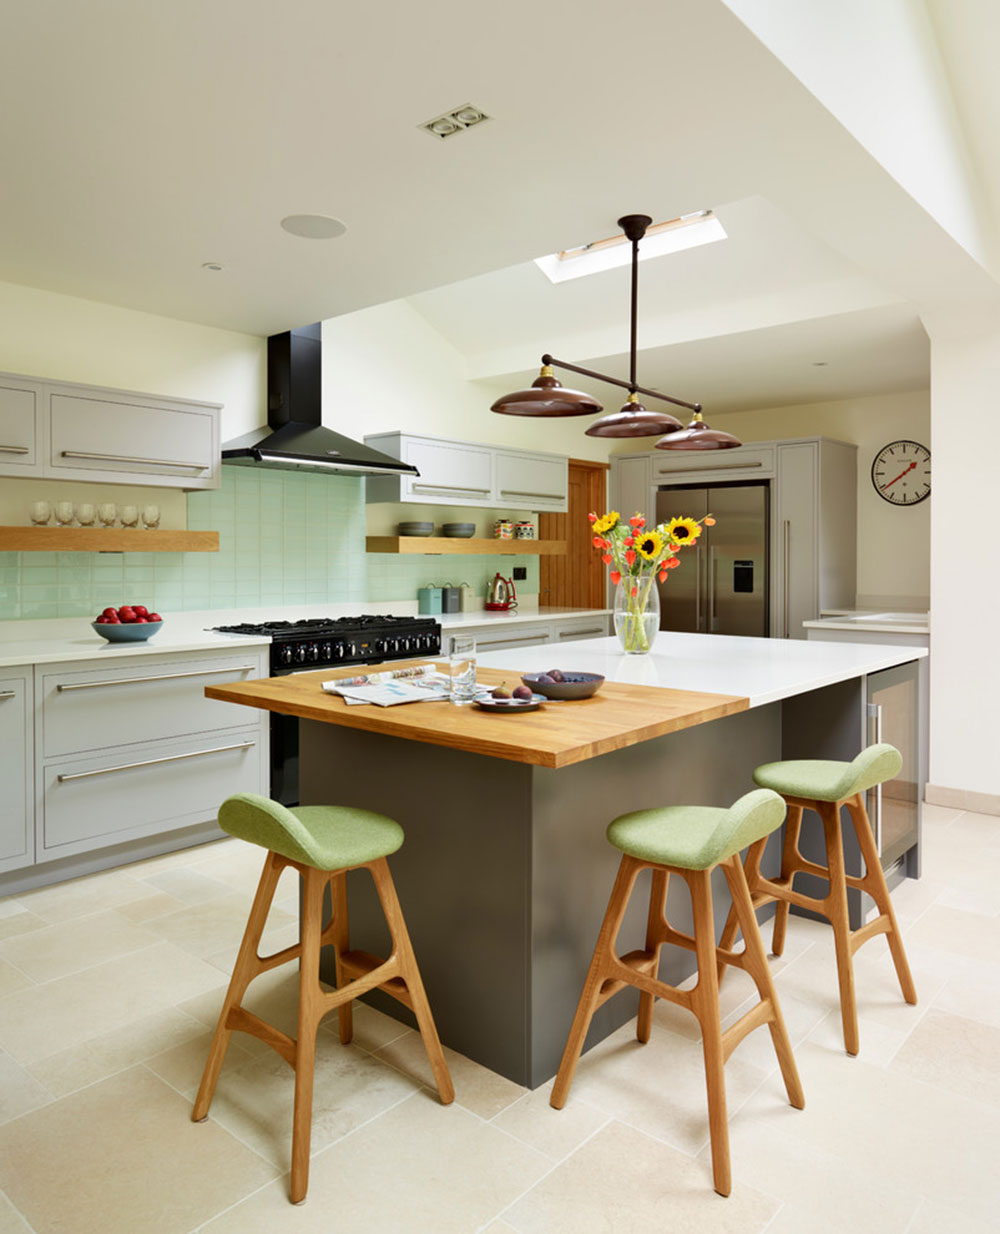 modern kitchen island designs seating kitchen island designs Modern Kitchen Island Designs With Seating 8